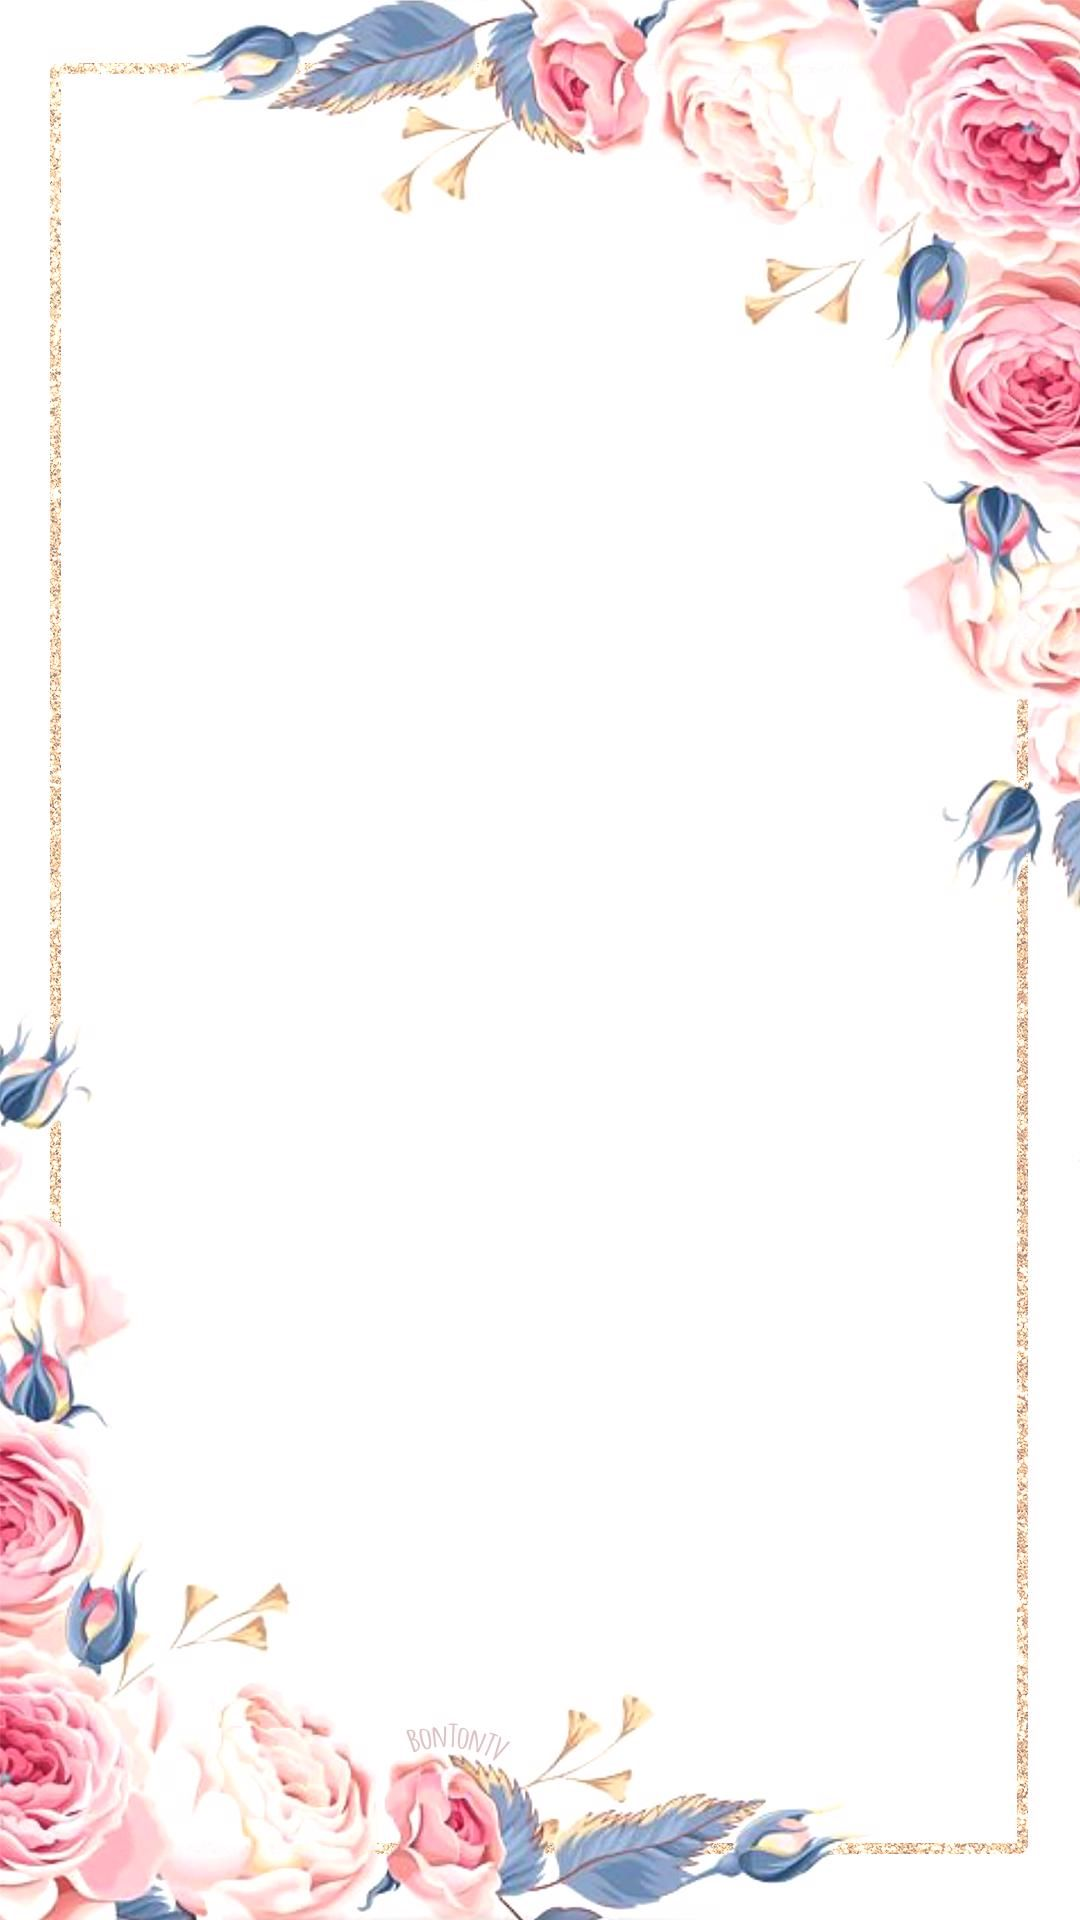 Phone Wallpapers Hd Watercolor Gold Flowers By Bonton Tv Free